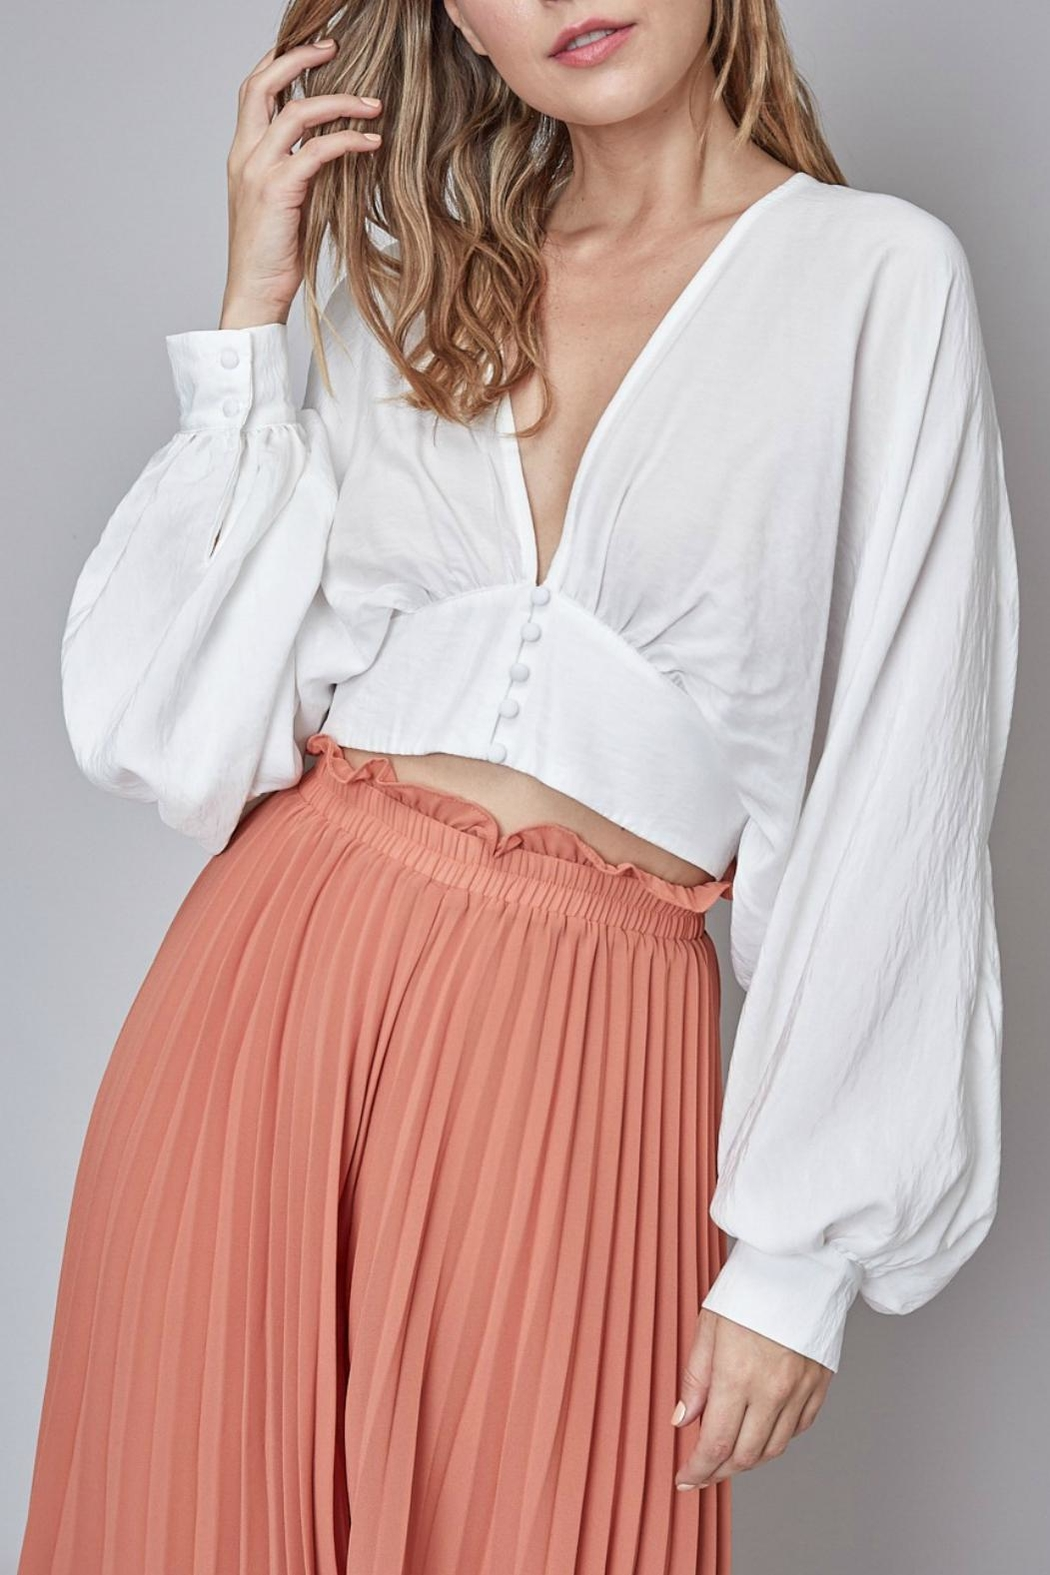 Pretty Little Things Blouse Crop Top - Main Image